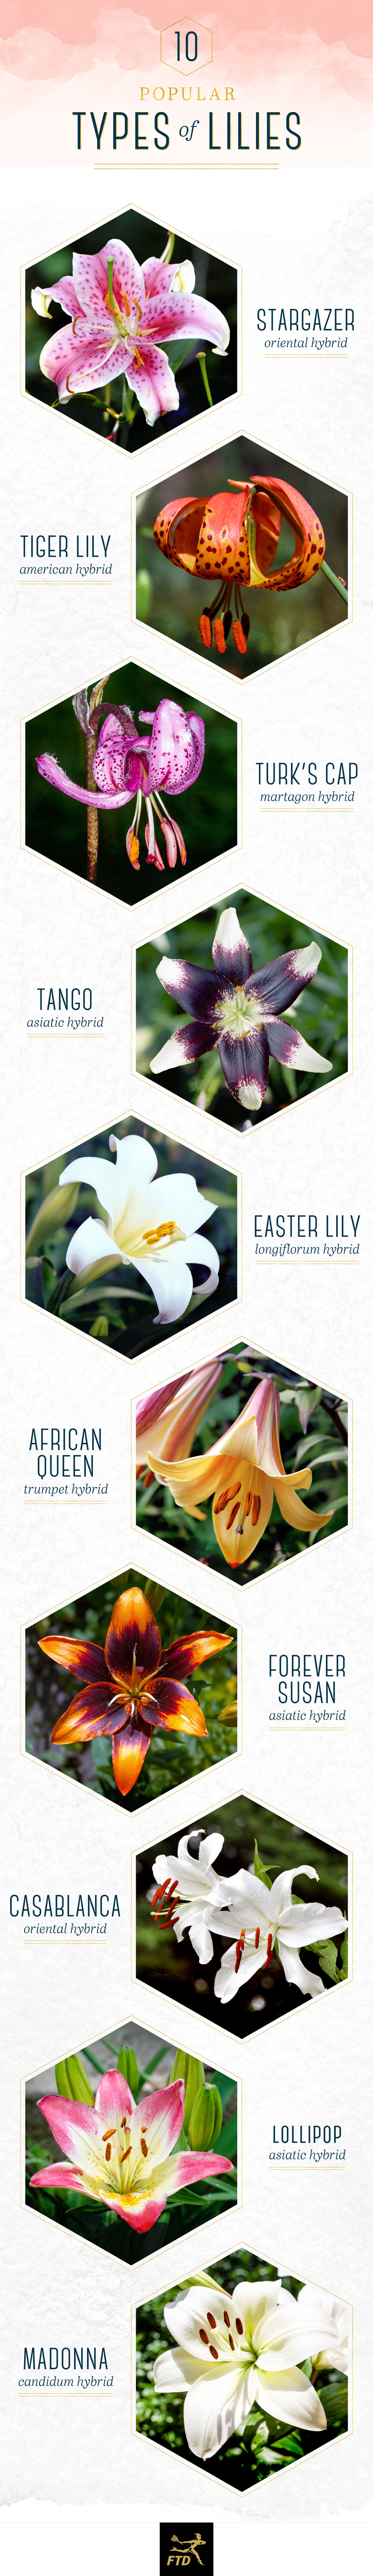 types of lilies infographic